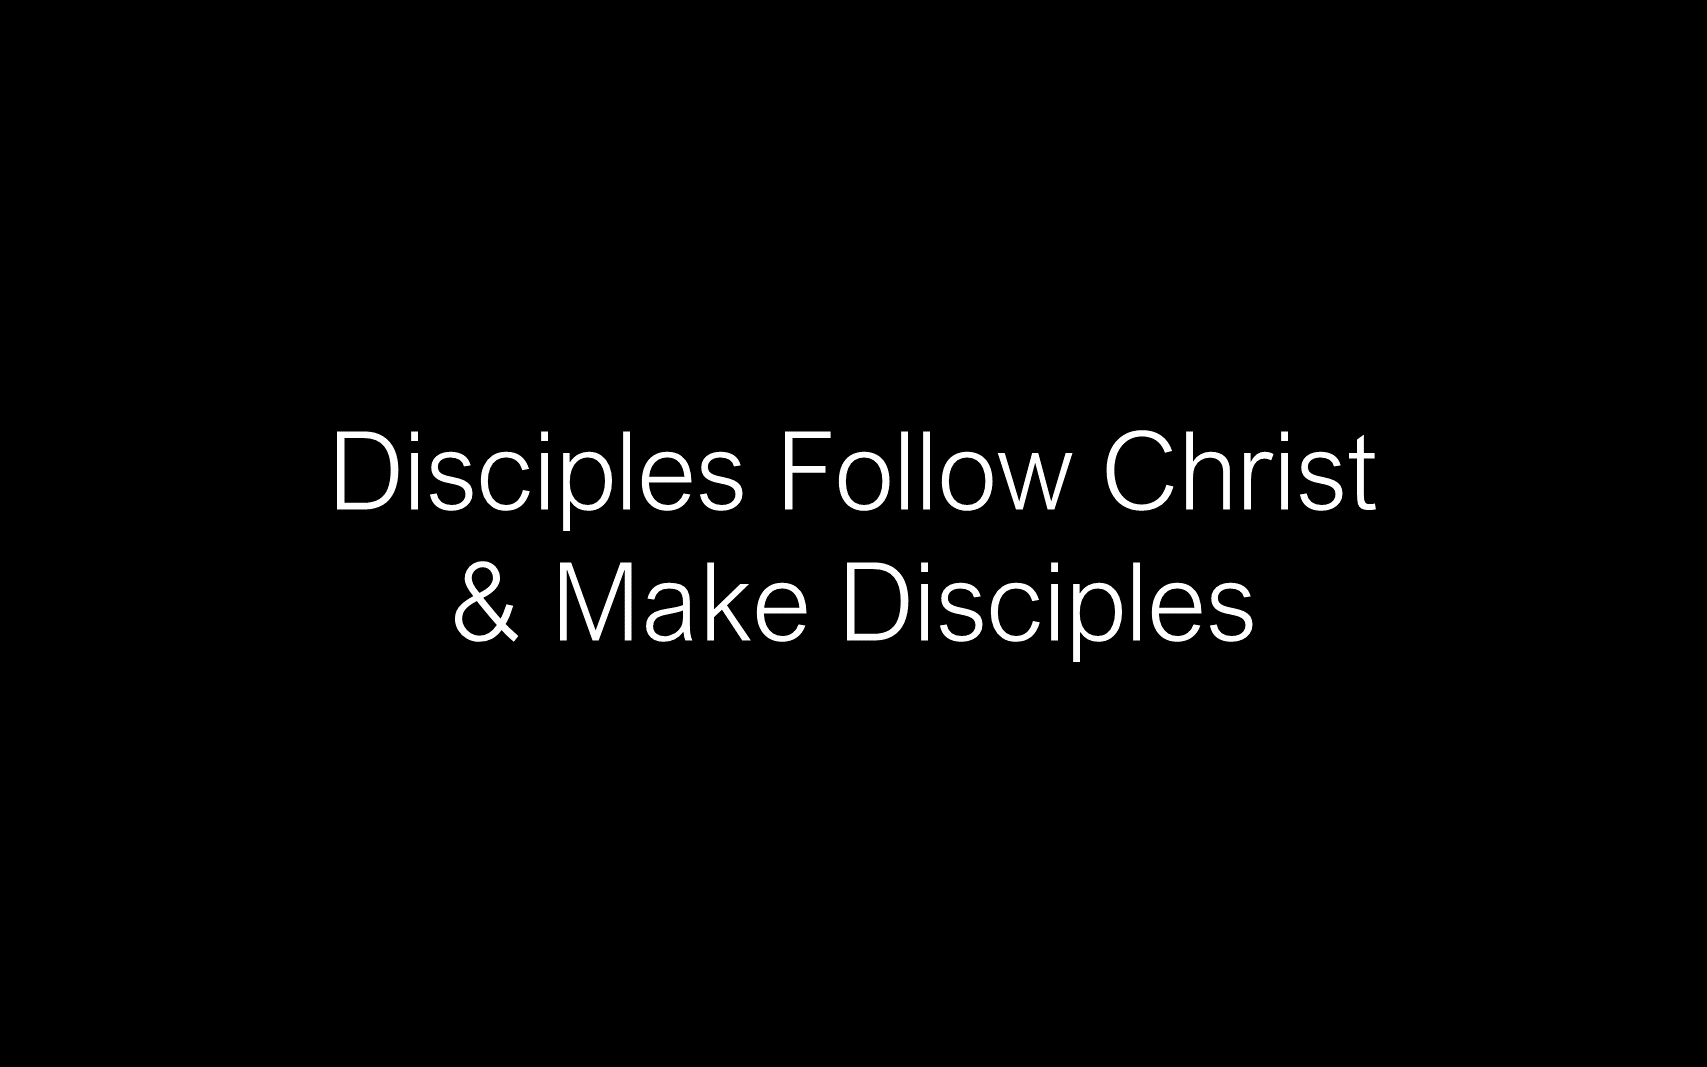 ESH-11 - The Discipline Of Disciple-Making - Disciples - Follow Christ & Make Disciples (5)